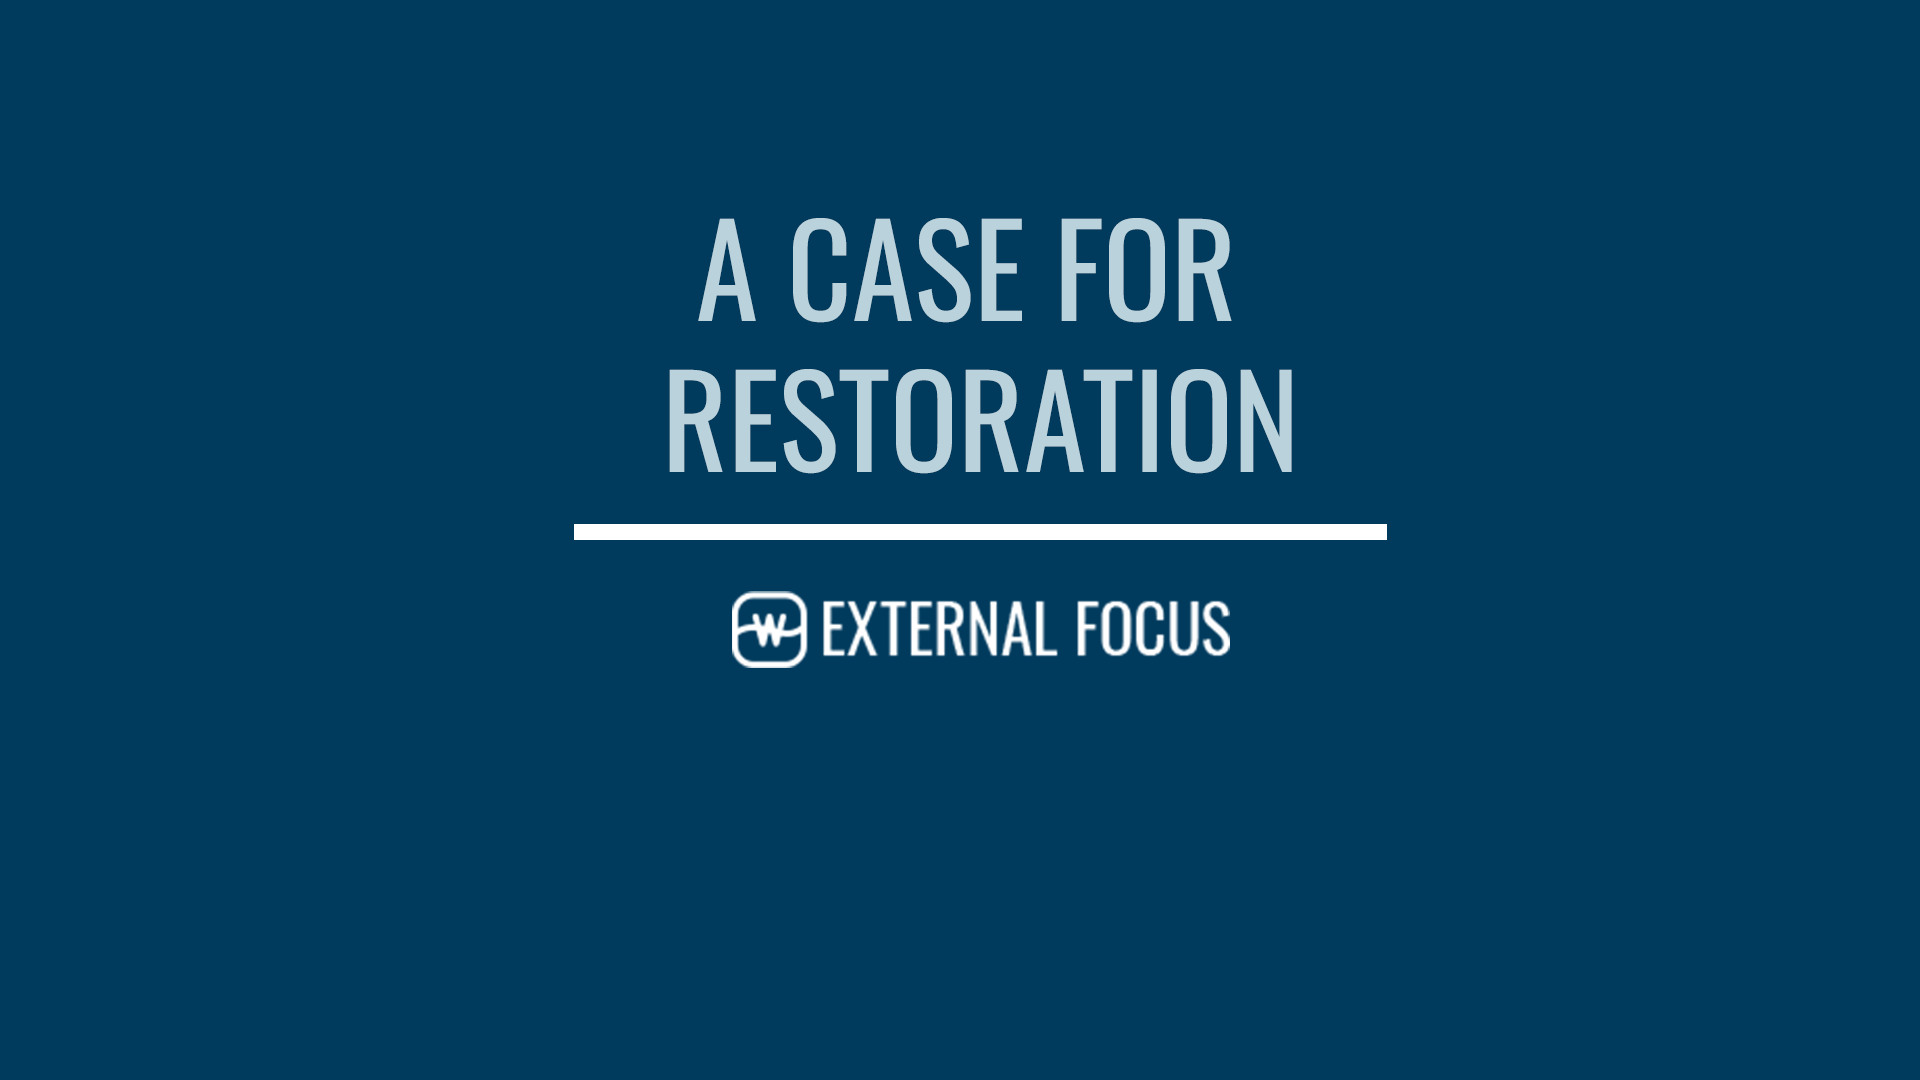 A Case for Restoration